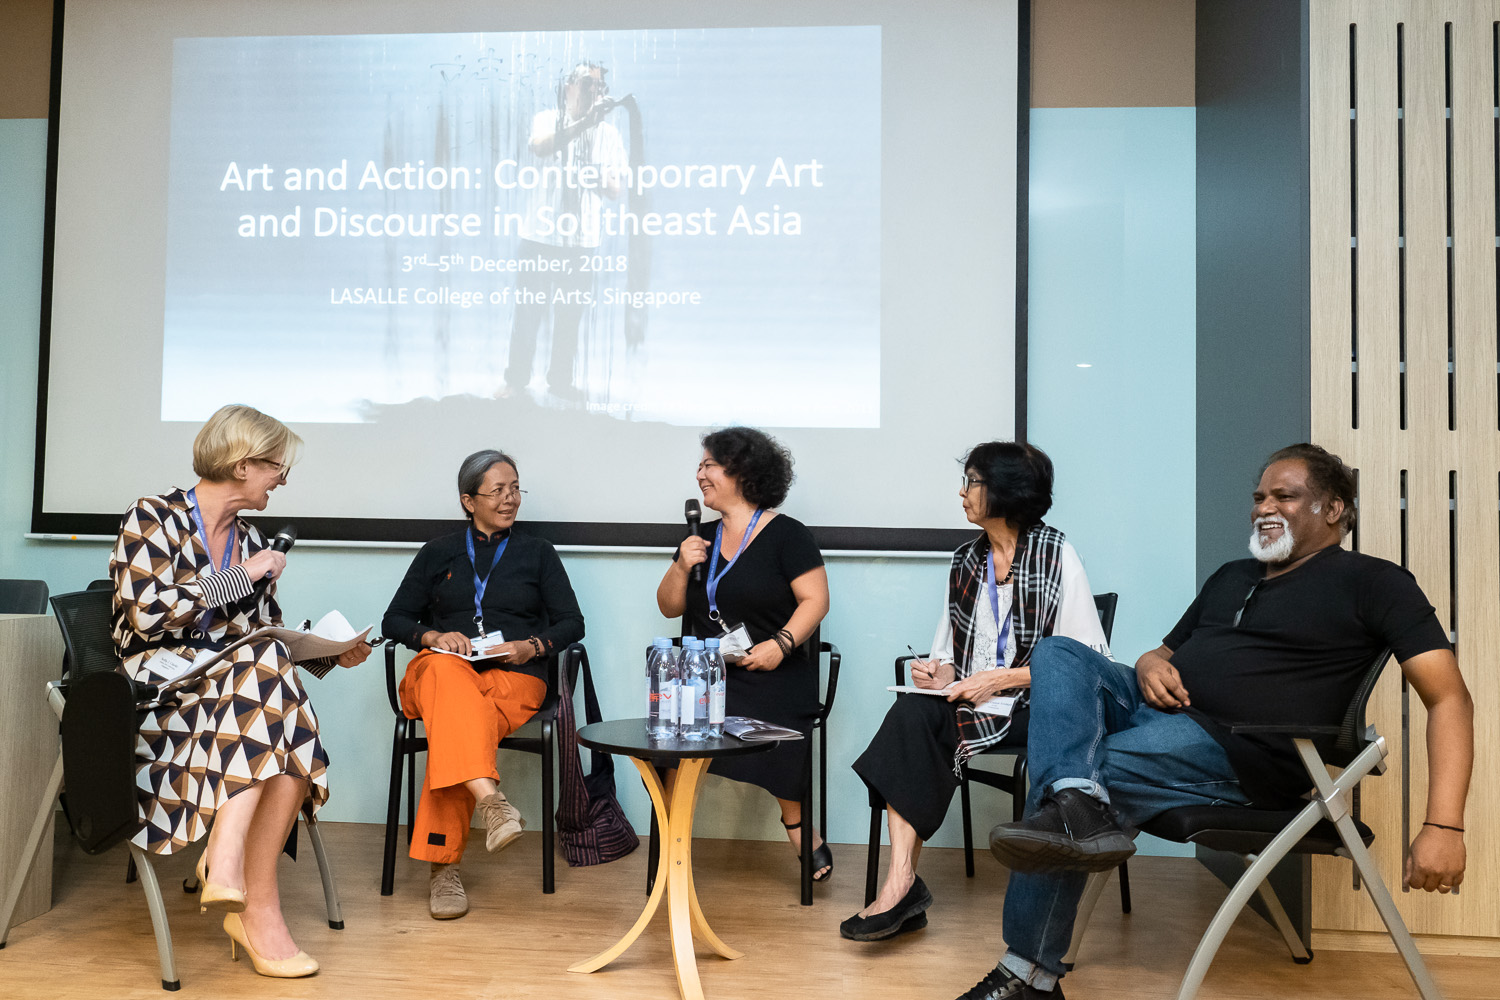 Artists Panel at 'Art and Action: Contemporary Art and Discourse in Southeast Asia'. From left to right: Sally J. Clarke, Curator and Arts Writer; Founder, Asian Arts Advisory (Singapore); Arahmaiani (Indonesia); Yee I-Lann (Malaysia); Imelda Cajipe Endaya (Philippines); and S. Chandrasekaran (Singapore). Image courtesy of LASALLE College of the Arts (photo by Ken Cheong).